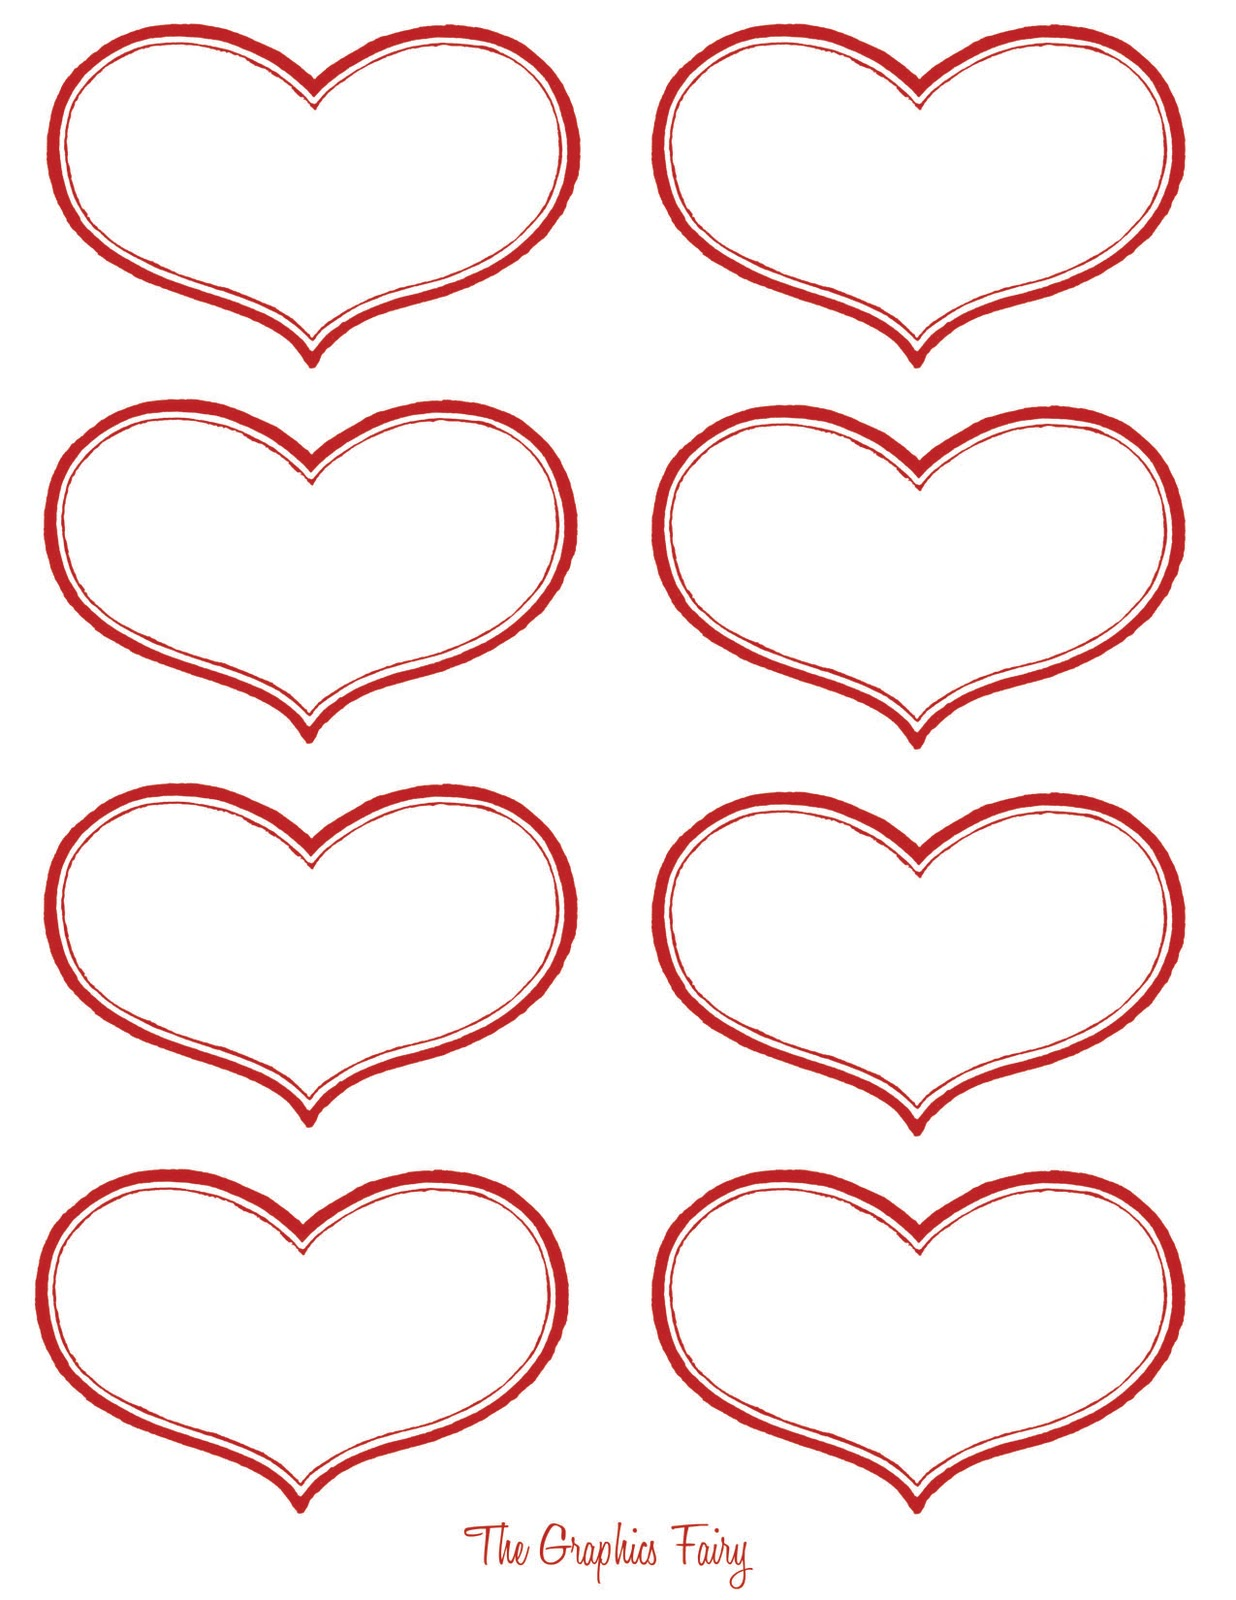 This is a photo of Printable Heart Shapes with basic